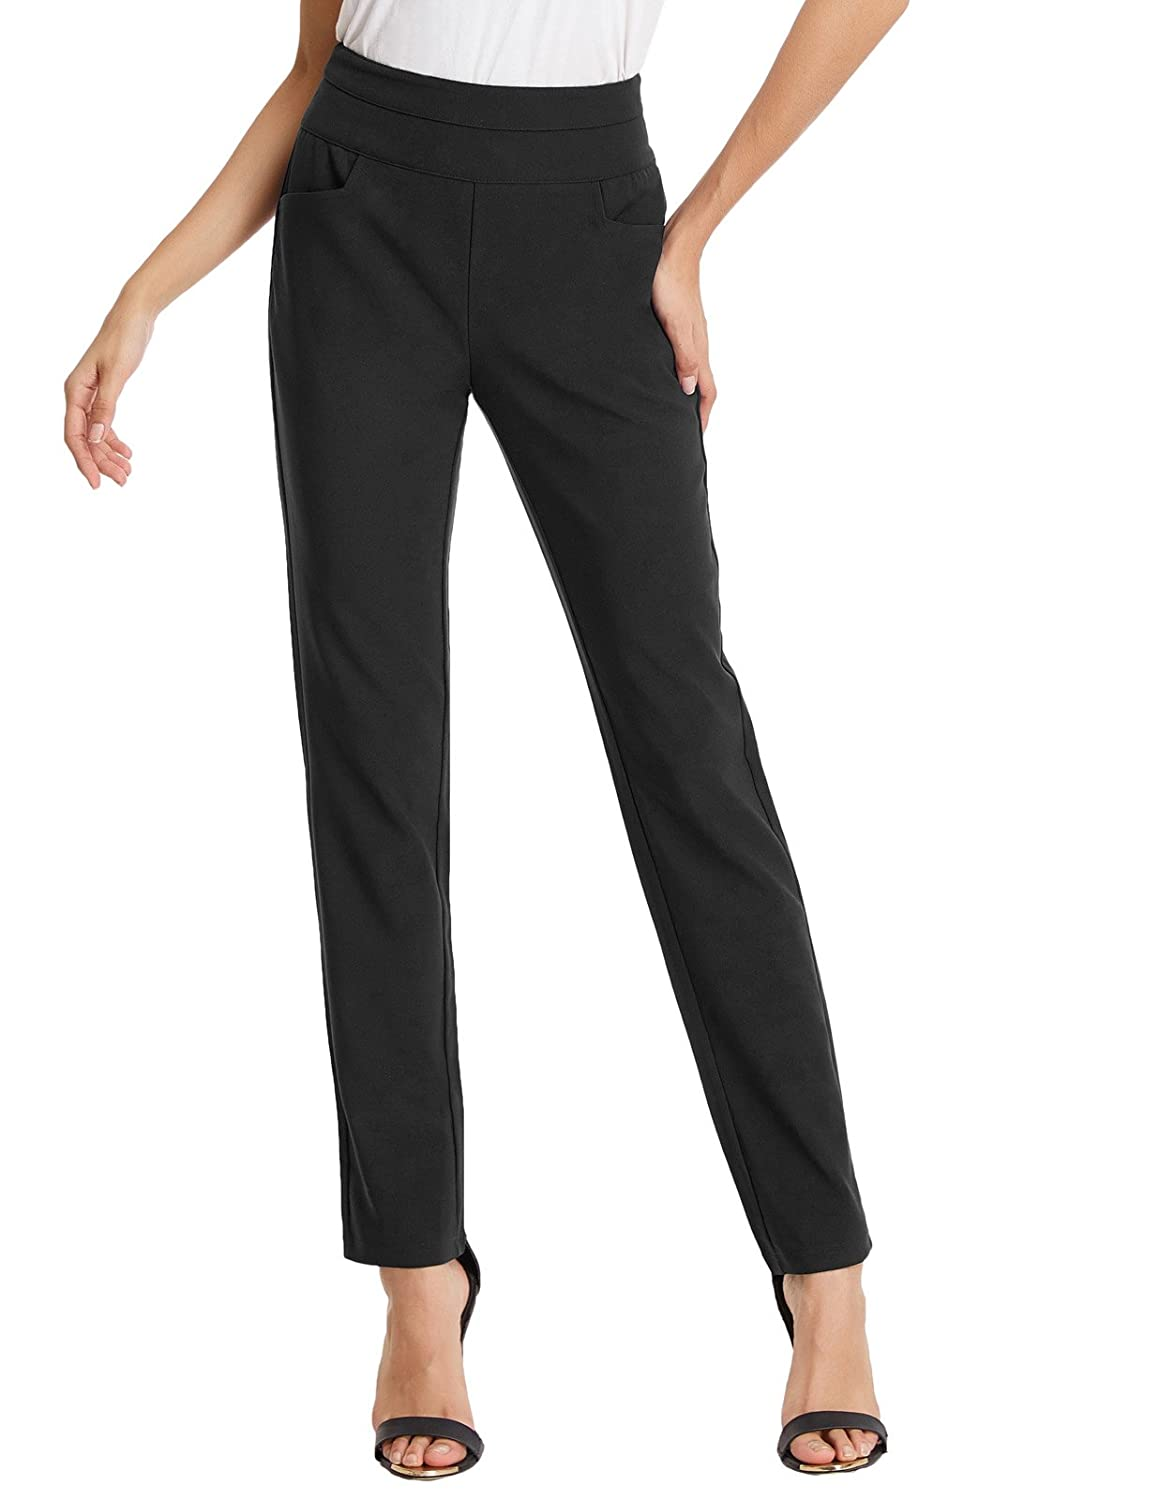 Kate Kasin Women's Slim Fit Pencil Pants Ankle Pants for Work with Pocket